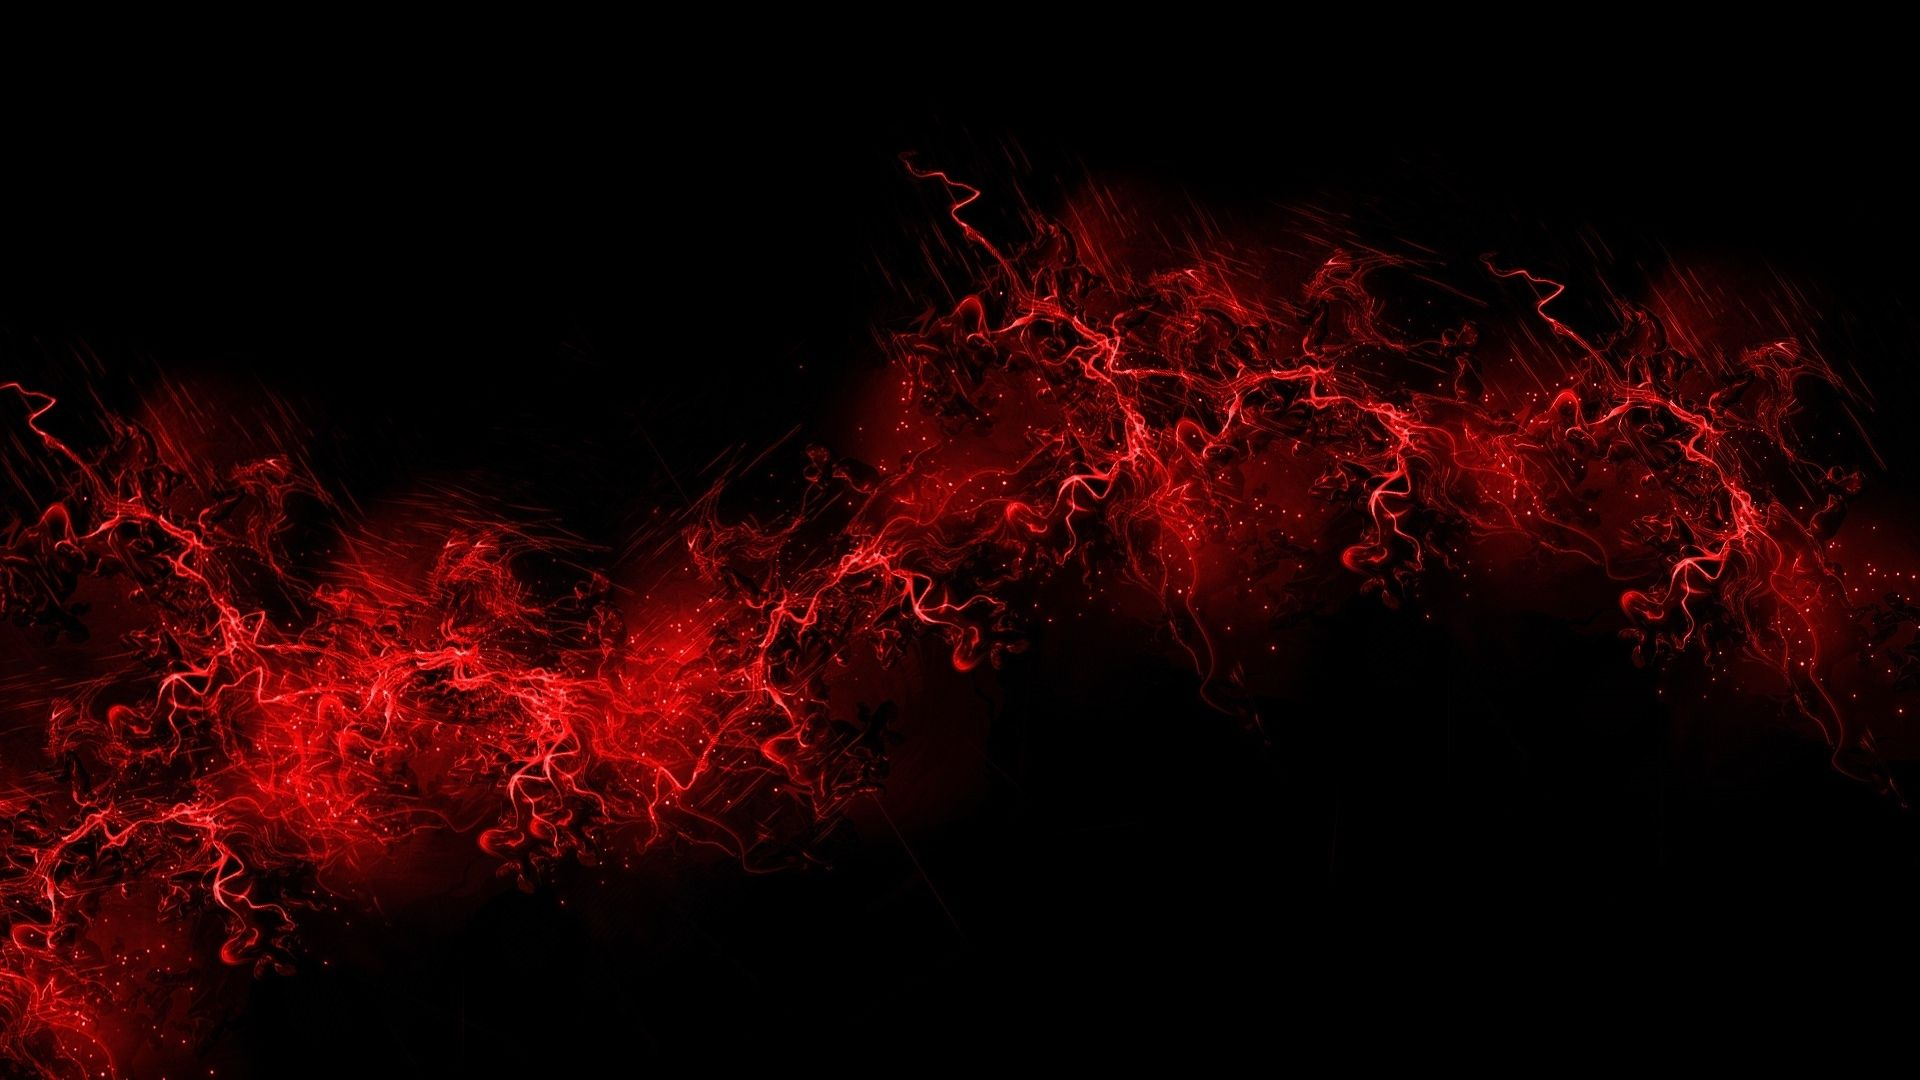 HD background images red and black   Full Hd 1080p Abstract 1920x1080